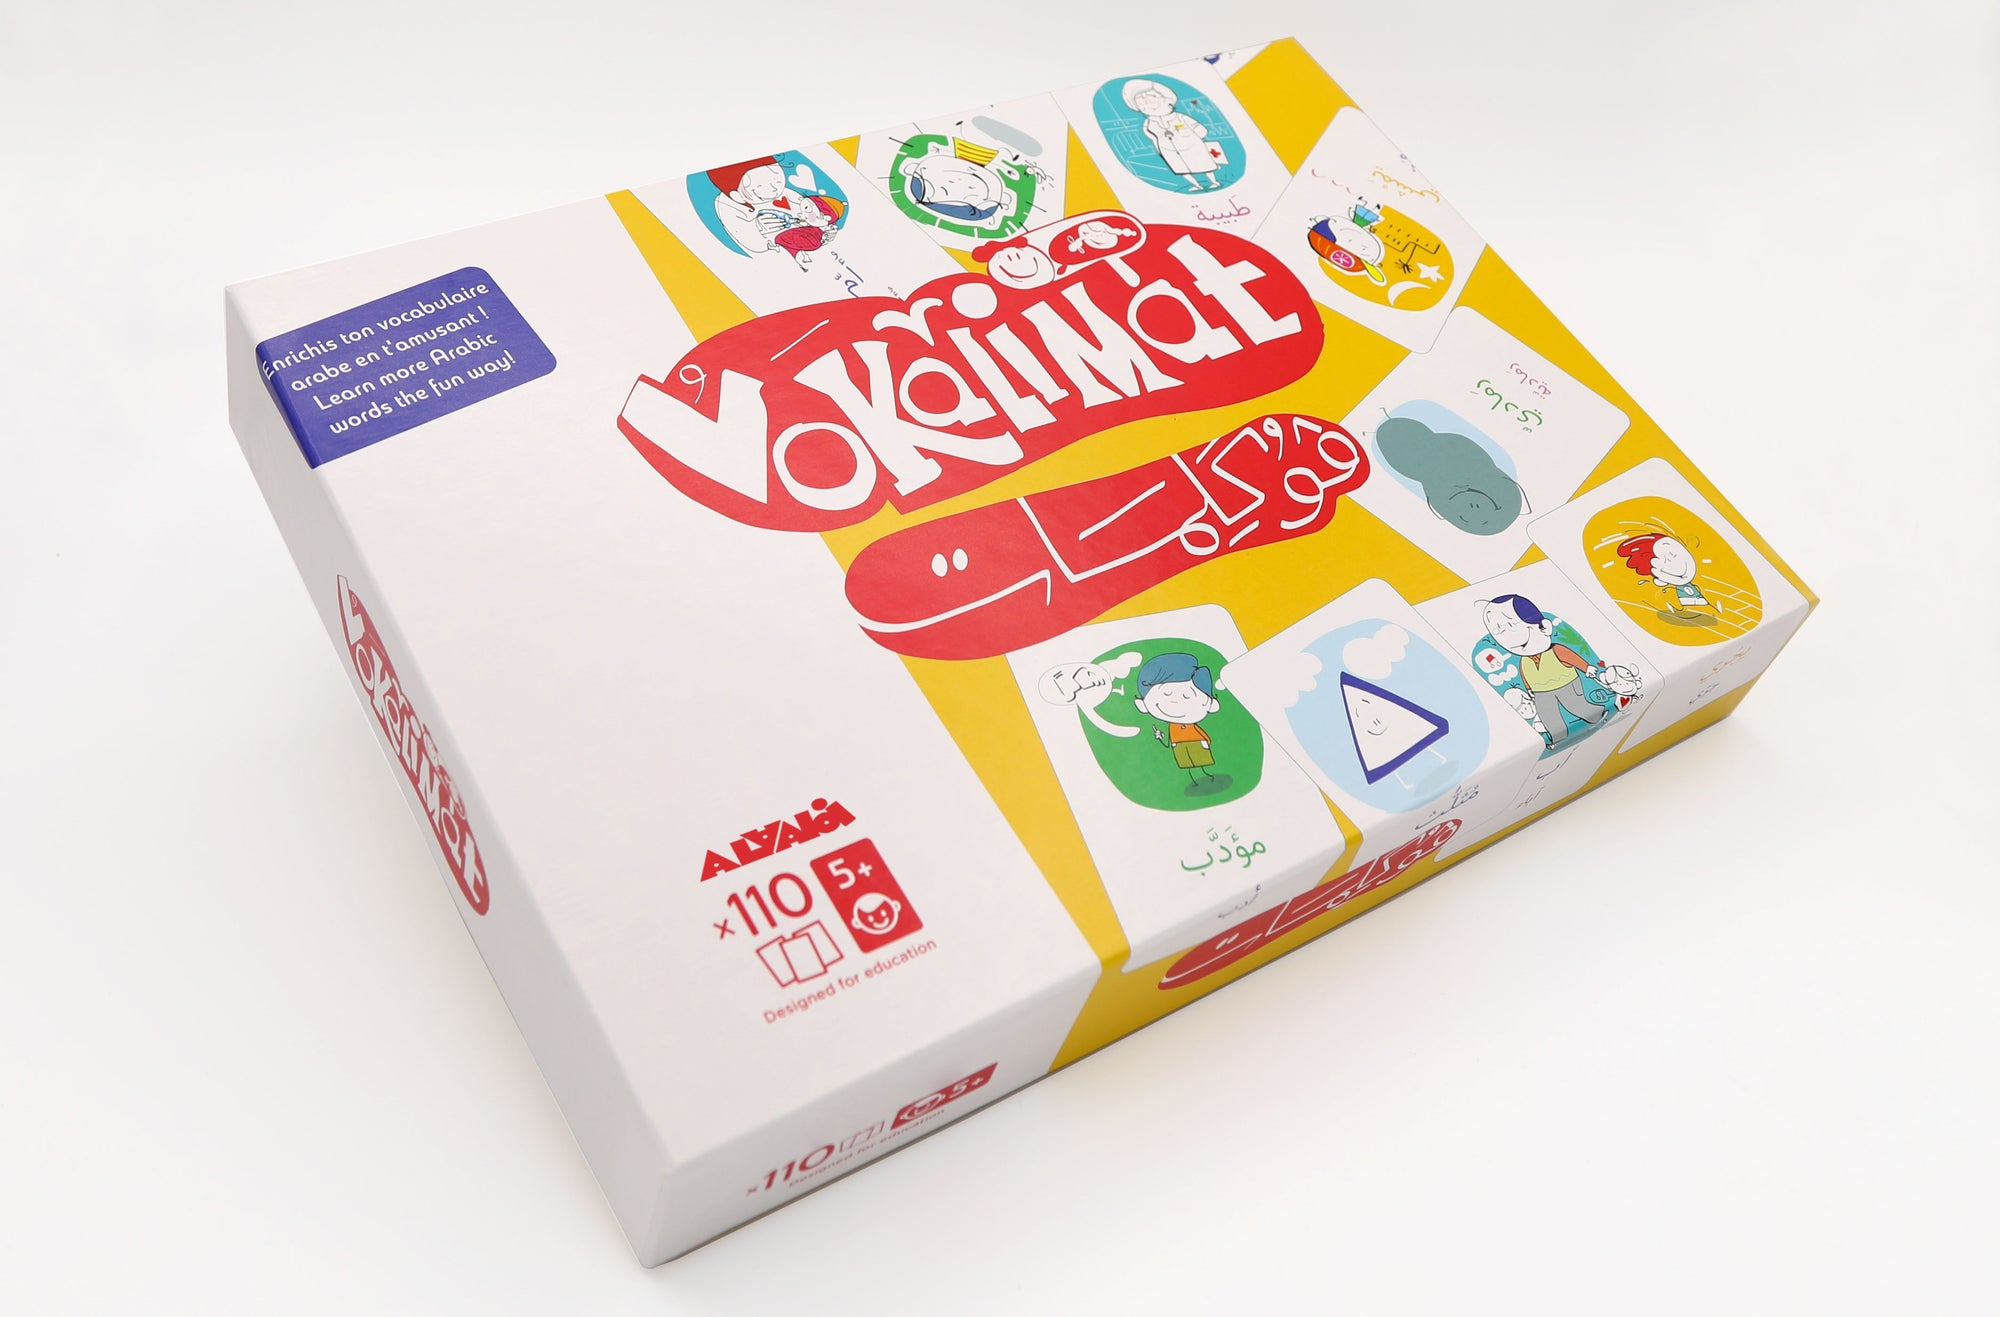 Arabic Vocabulary Board Game - VOKALIMAT